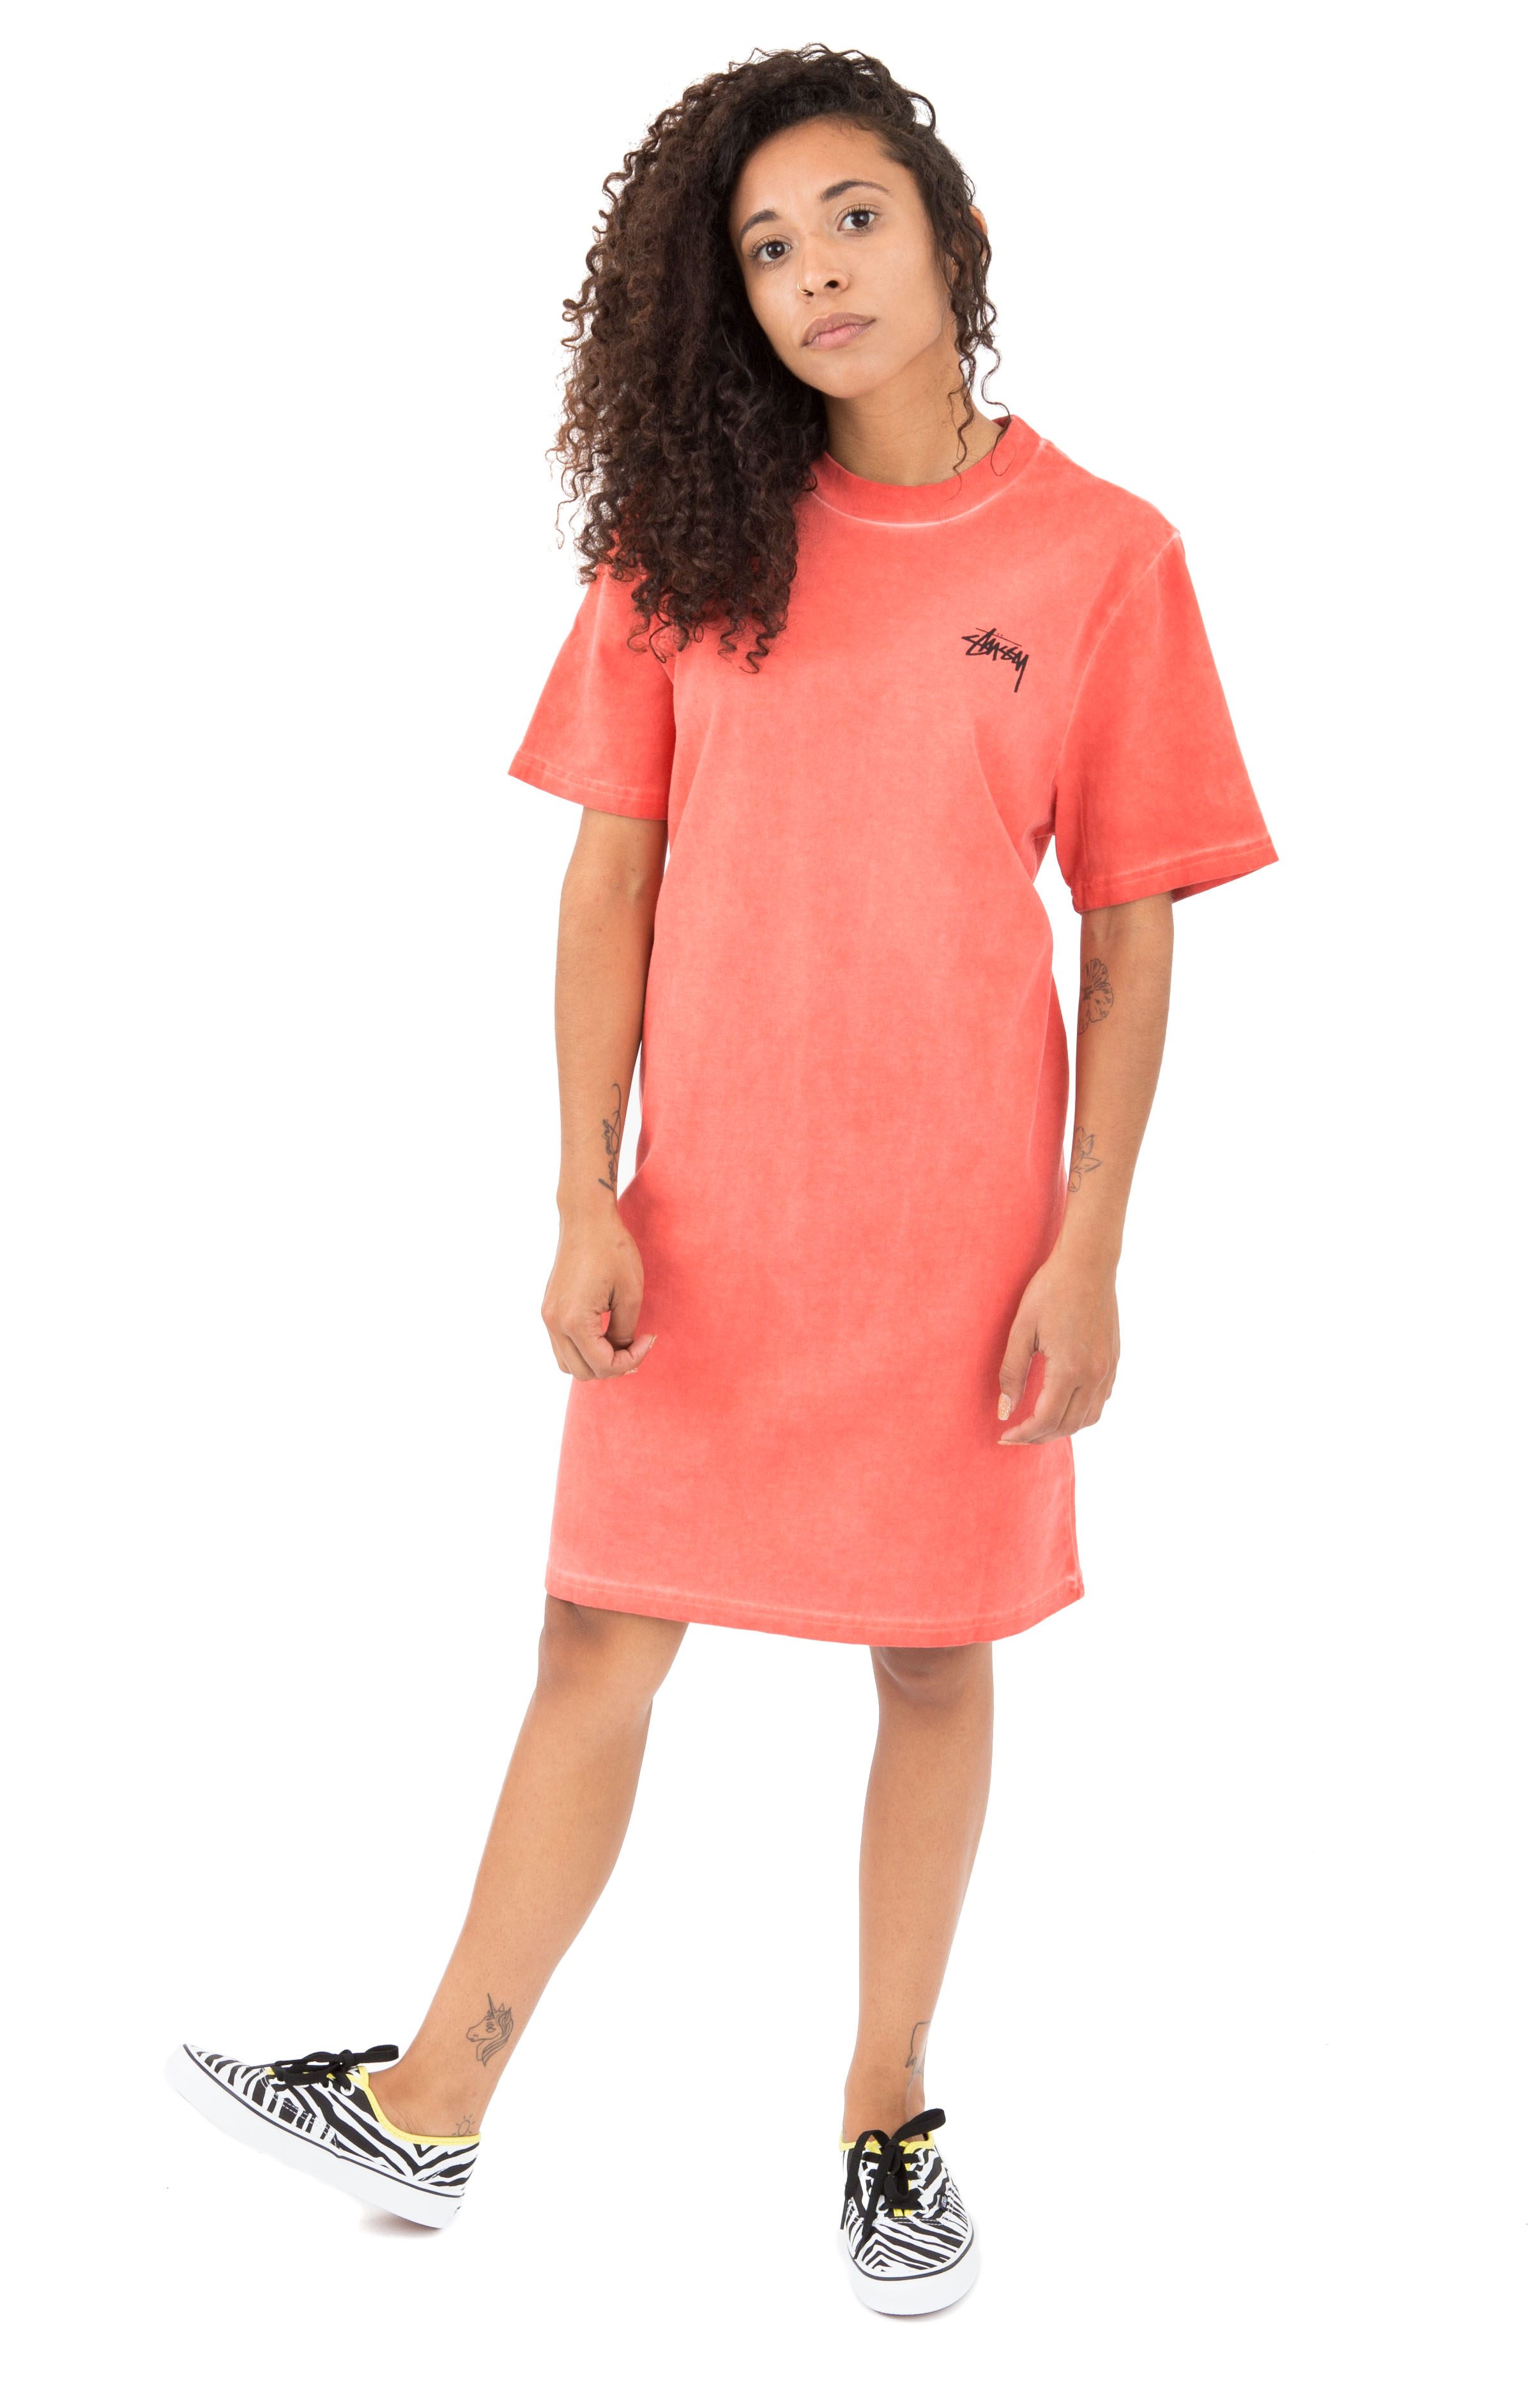 Dev T-Shirt Dress - Pink